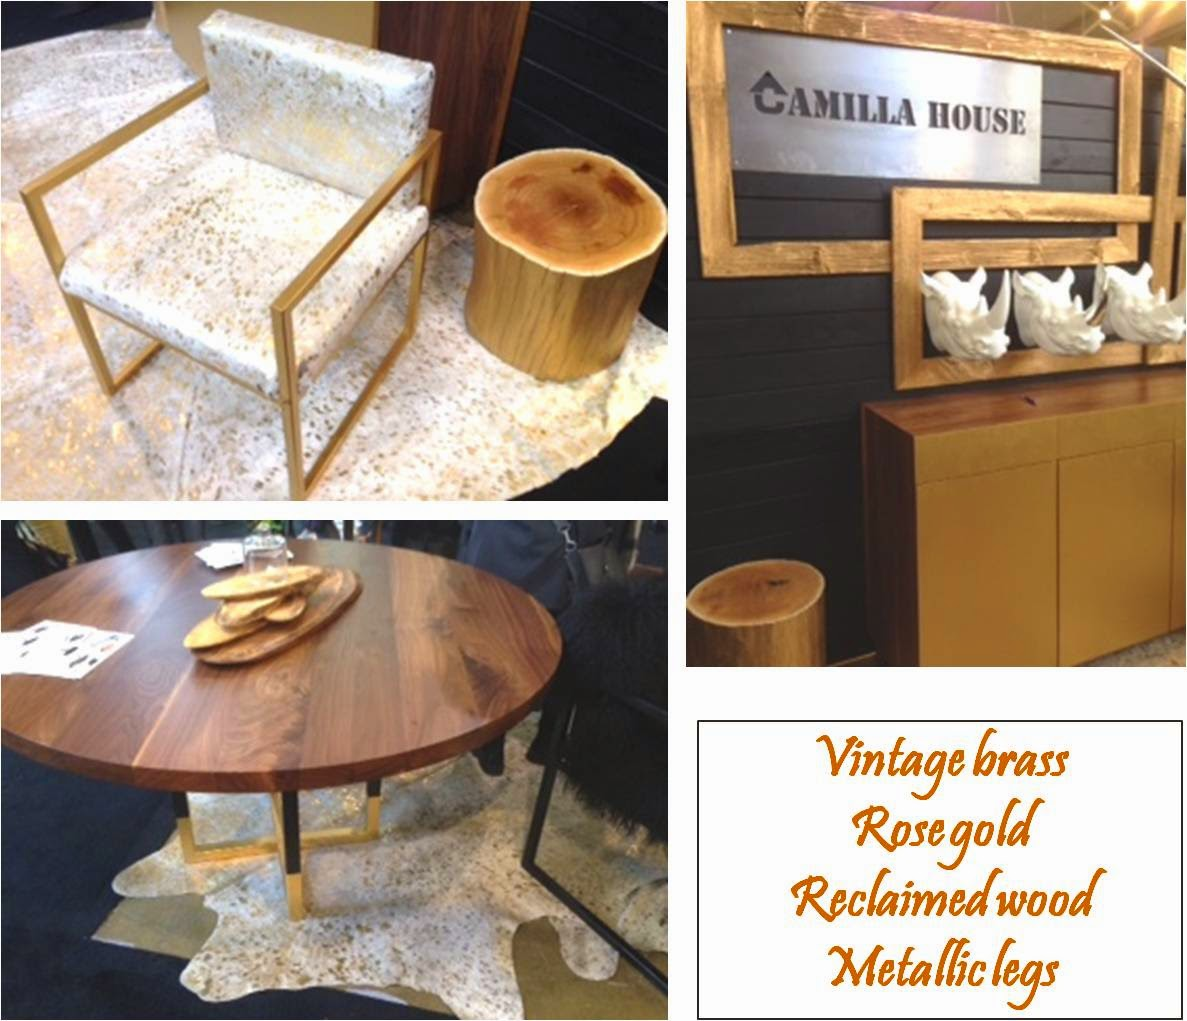 A Favourite Of Designers And Merchandisers For Innovative And Funky  Furnishings Is Camilla House. Every Year I Can Count On Finding New Looks  In Furniture ...